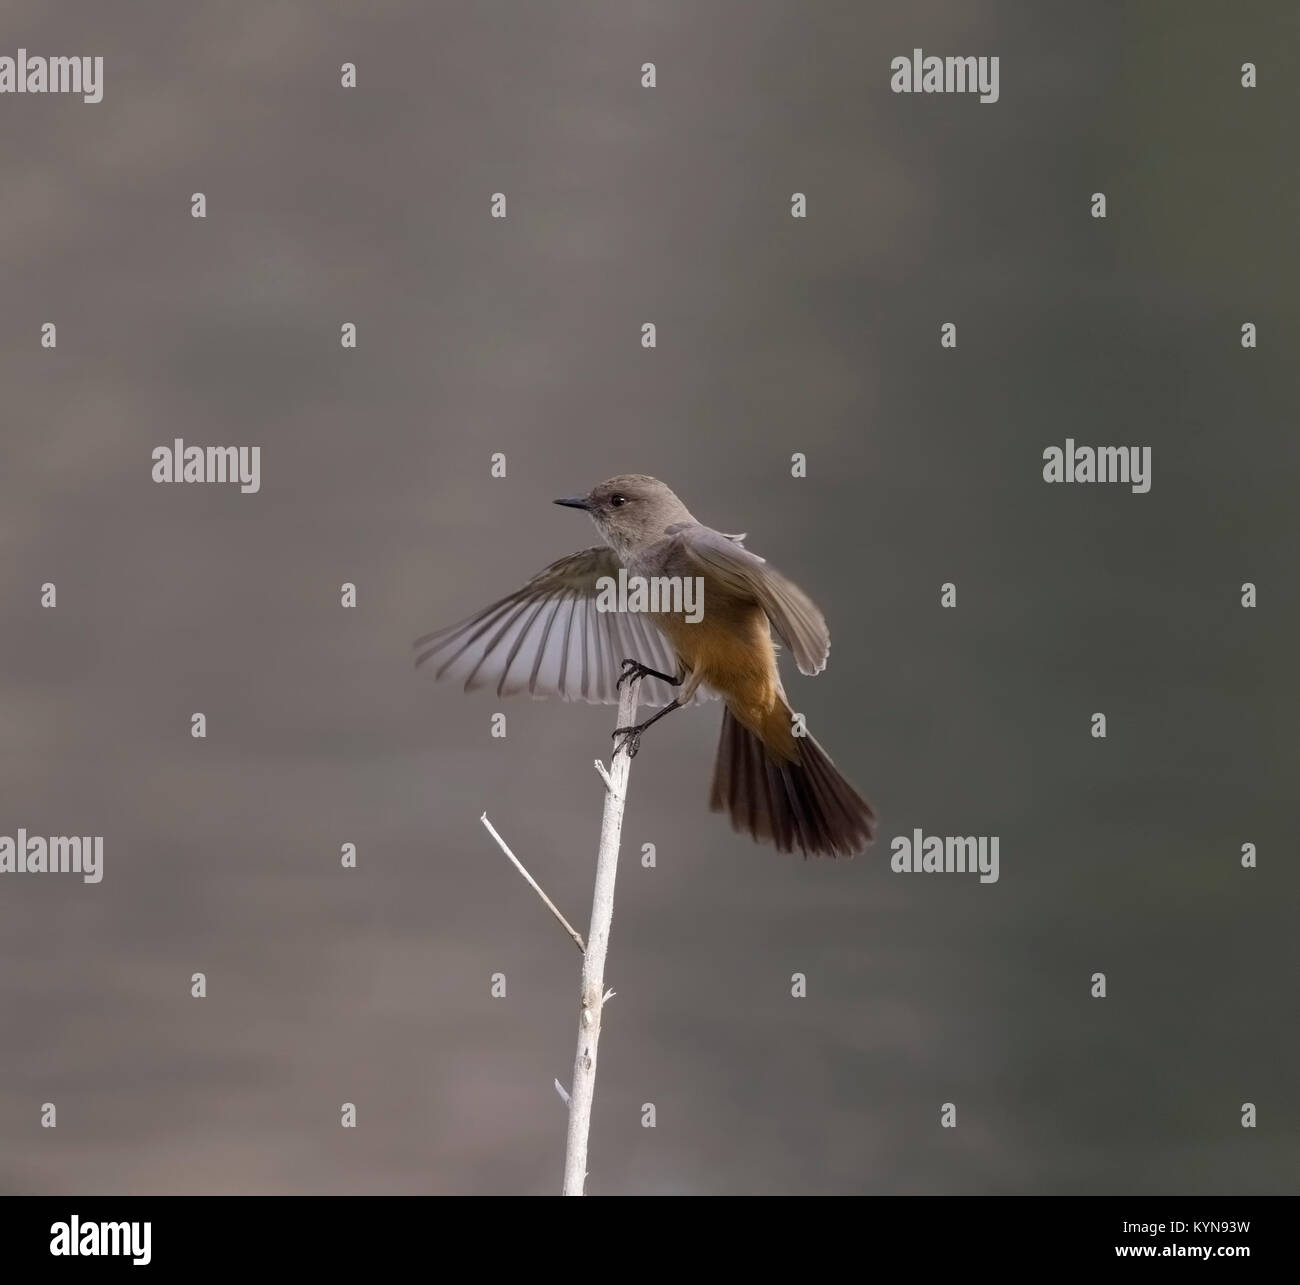 Say's Phoebe Just landed on twig - Stock Image